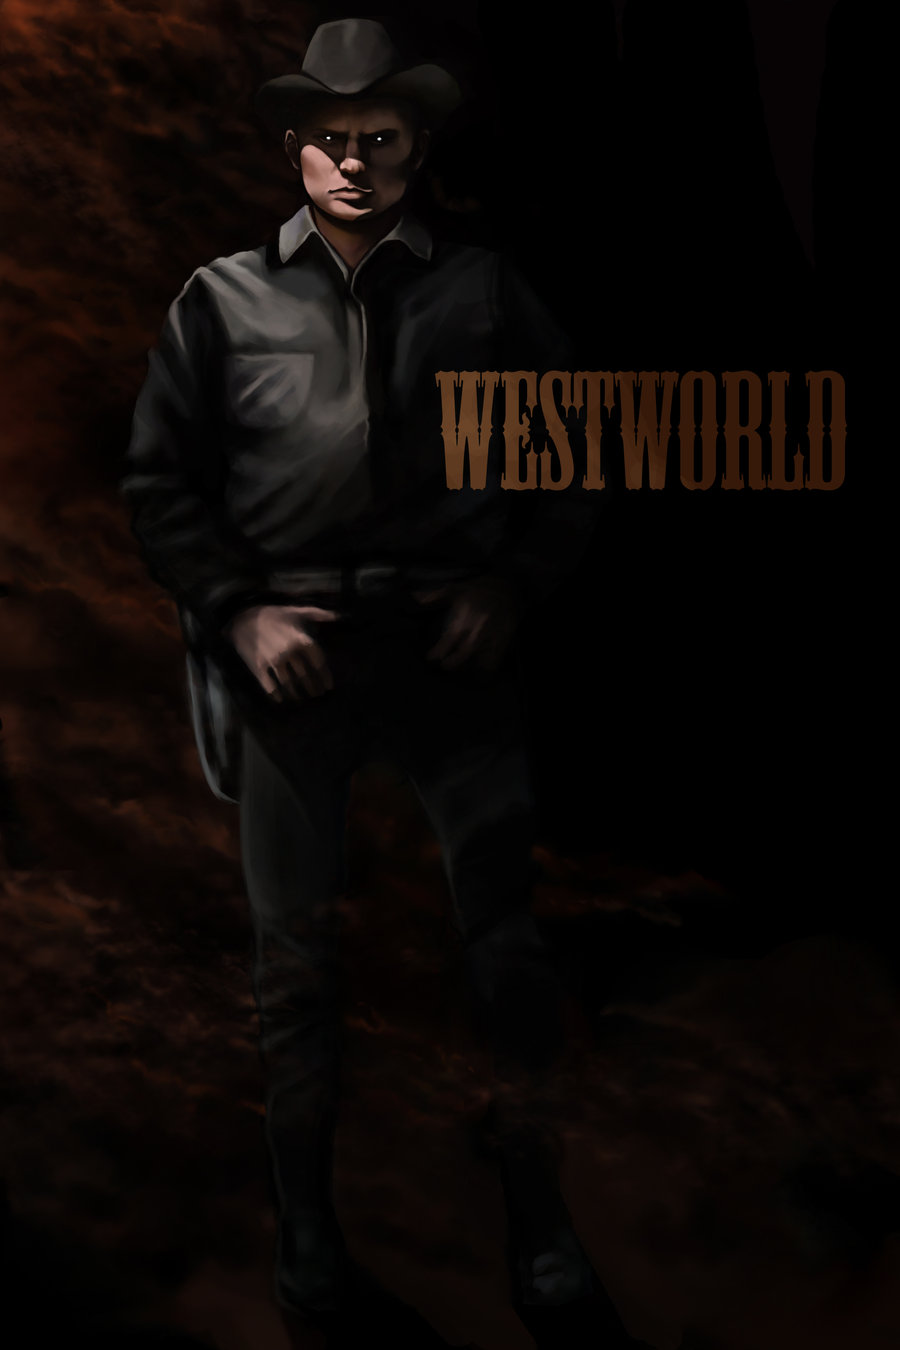 Westworld Wallpapers 27 Wallpapers Adorable Wallpapers 900x1350